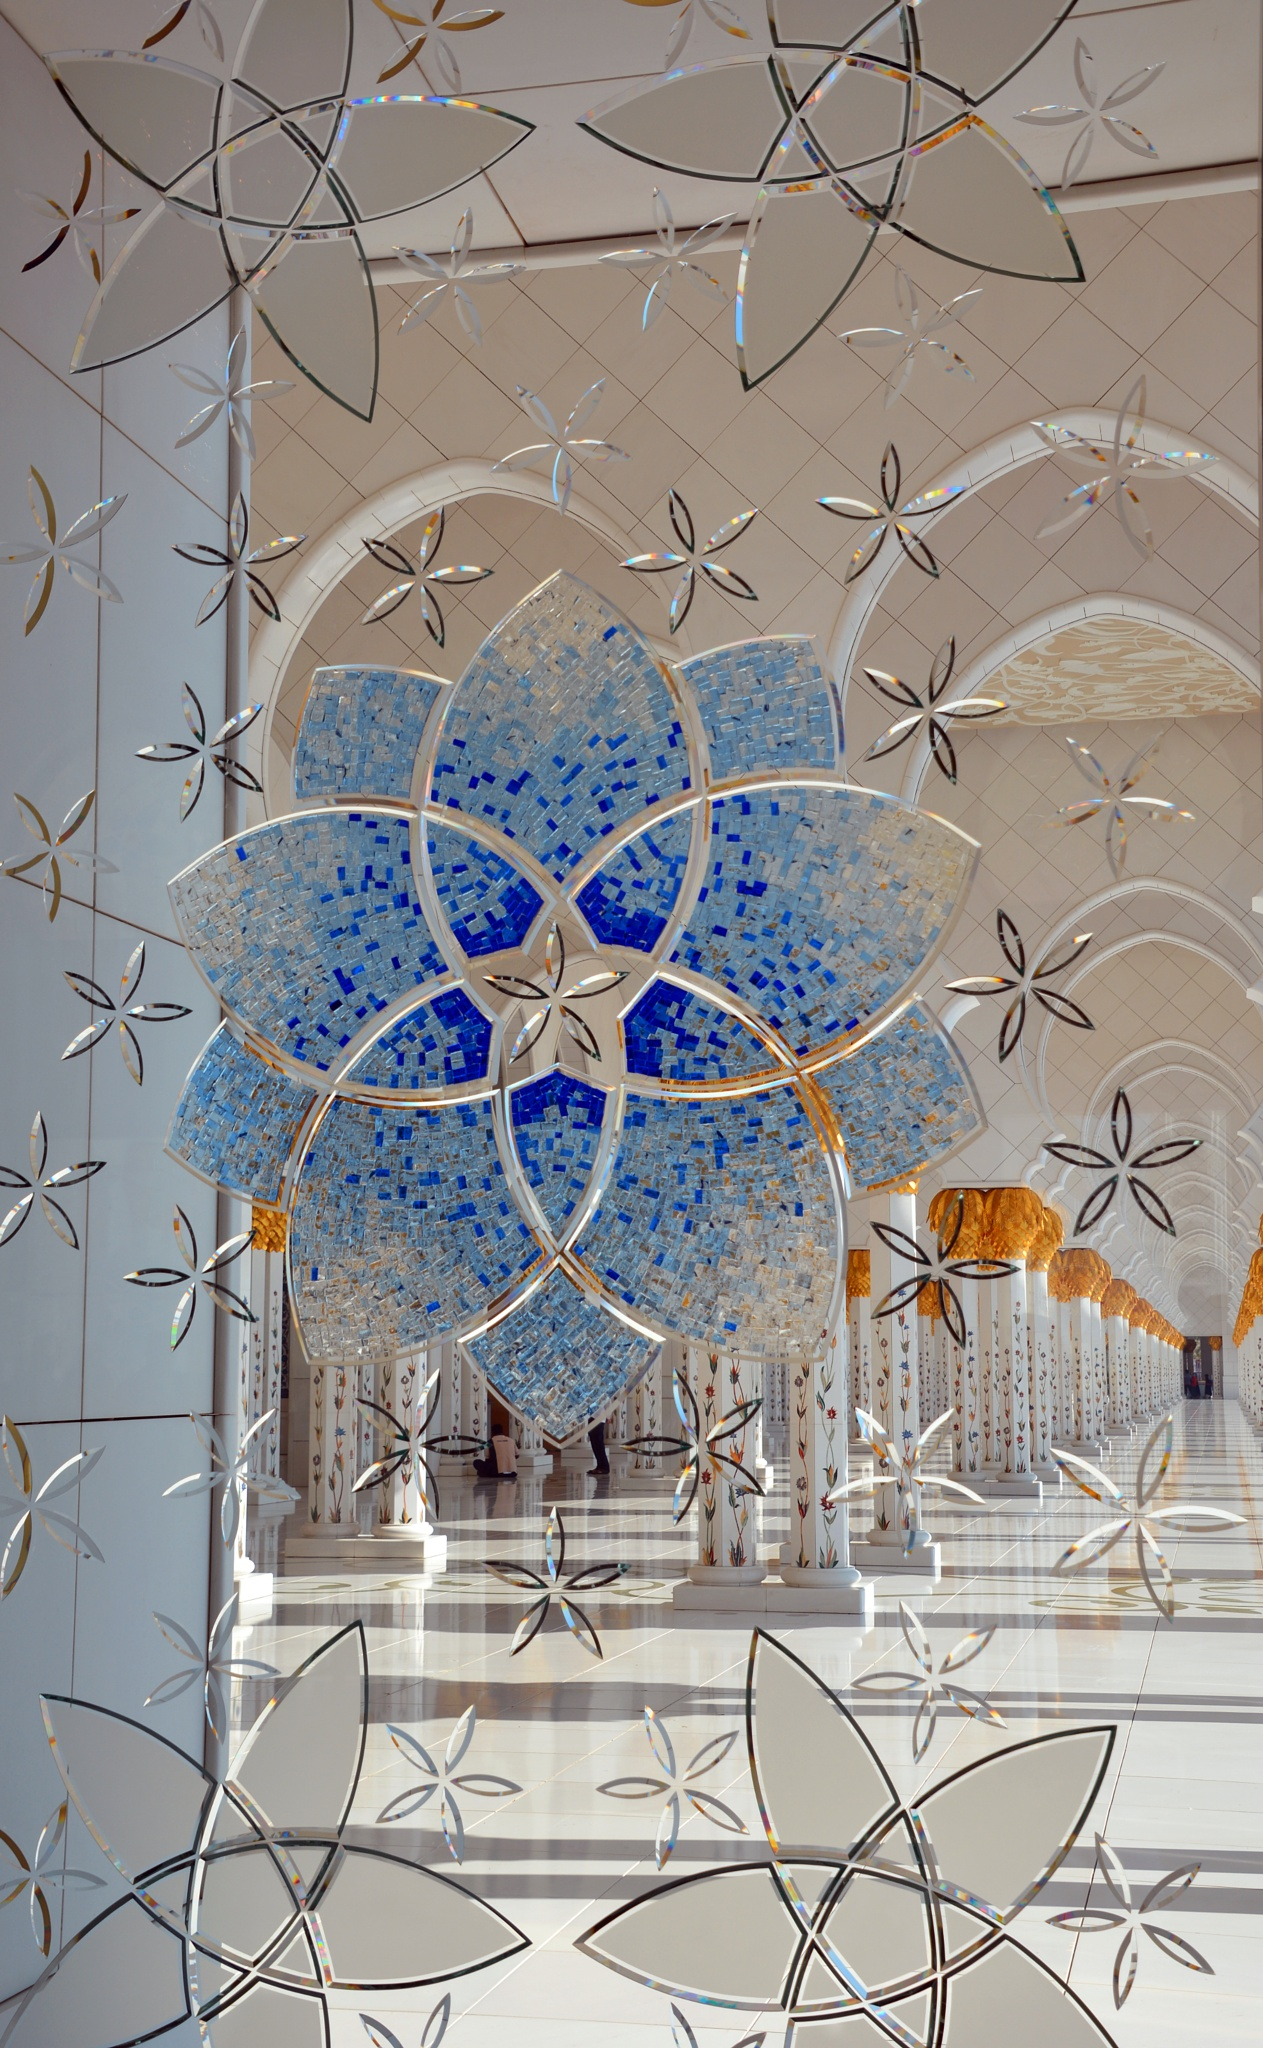 Abu Dhabi Mosque Window 2 by kelrey31